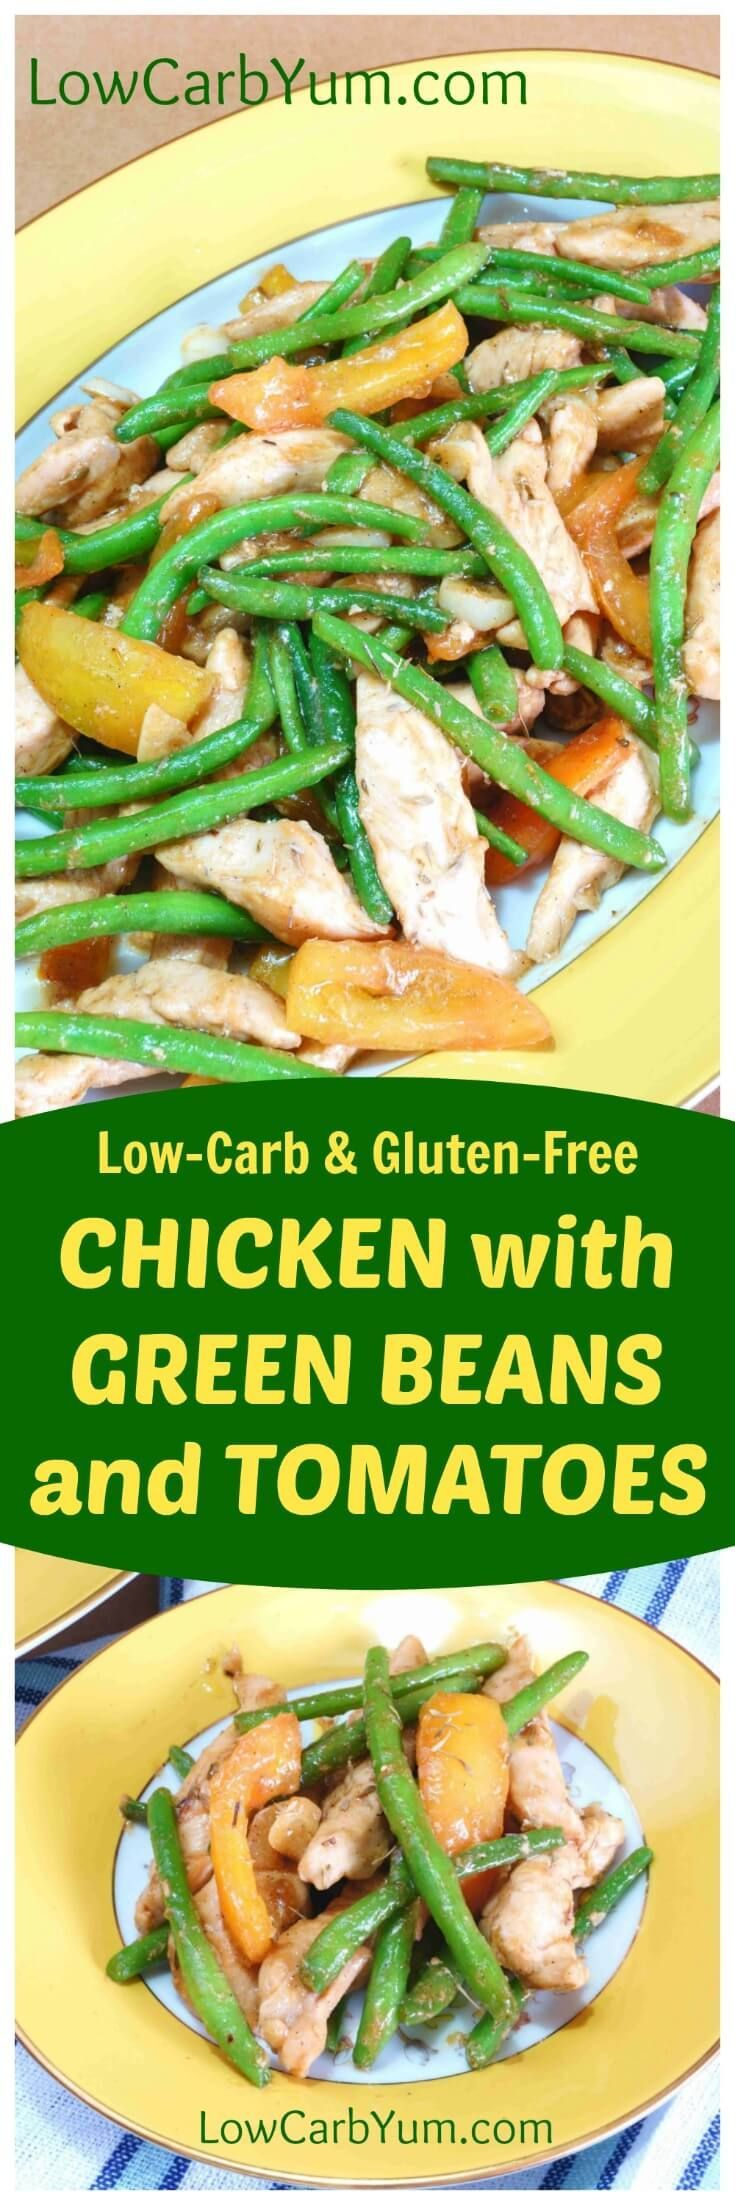 A wonderful chicken stir fry that cooks up fast in a skillet. This easy chicken green beans and tomatoes dish makes a healthy low carb meal. | http://LowCarbYum.com